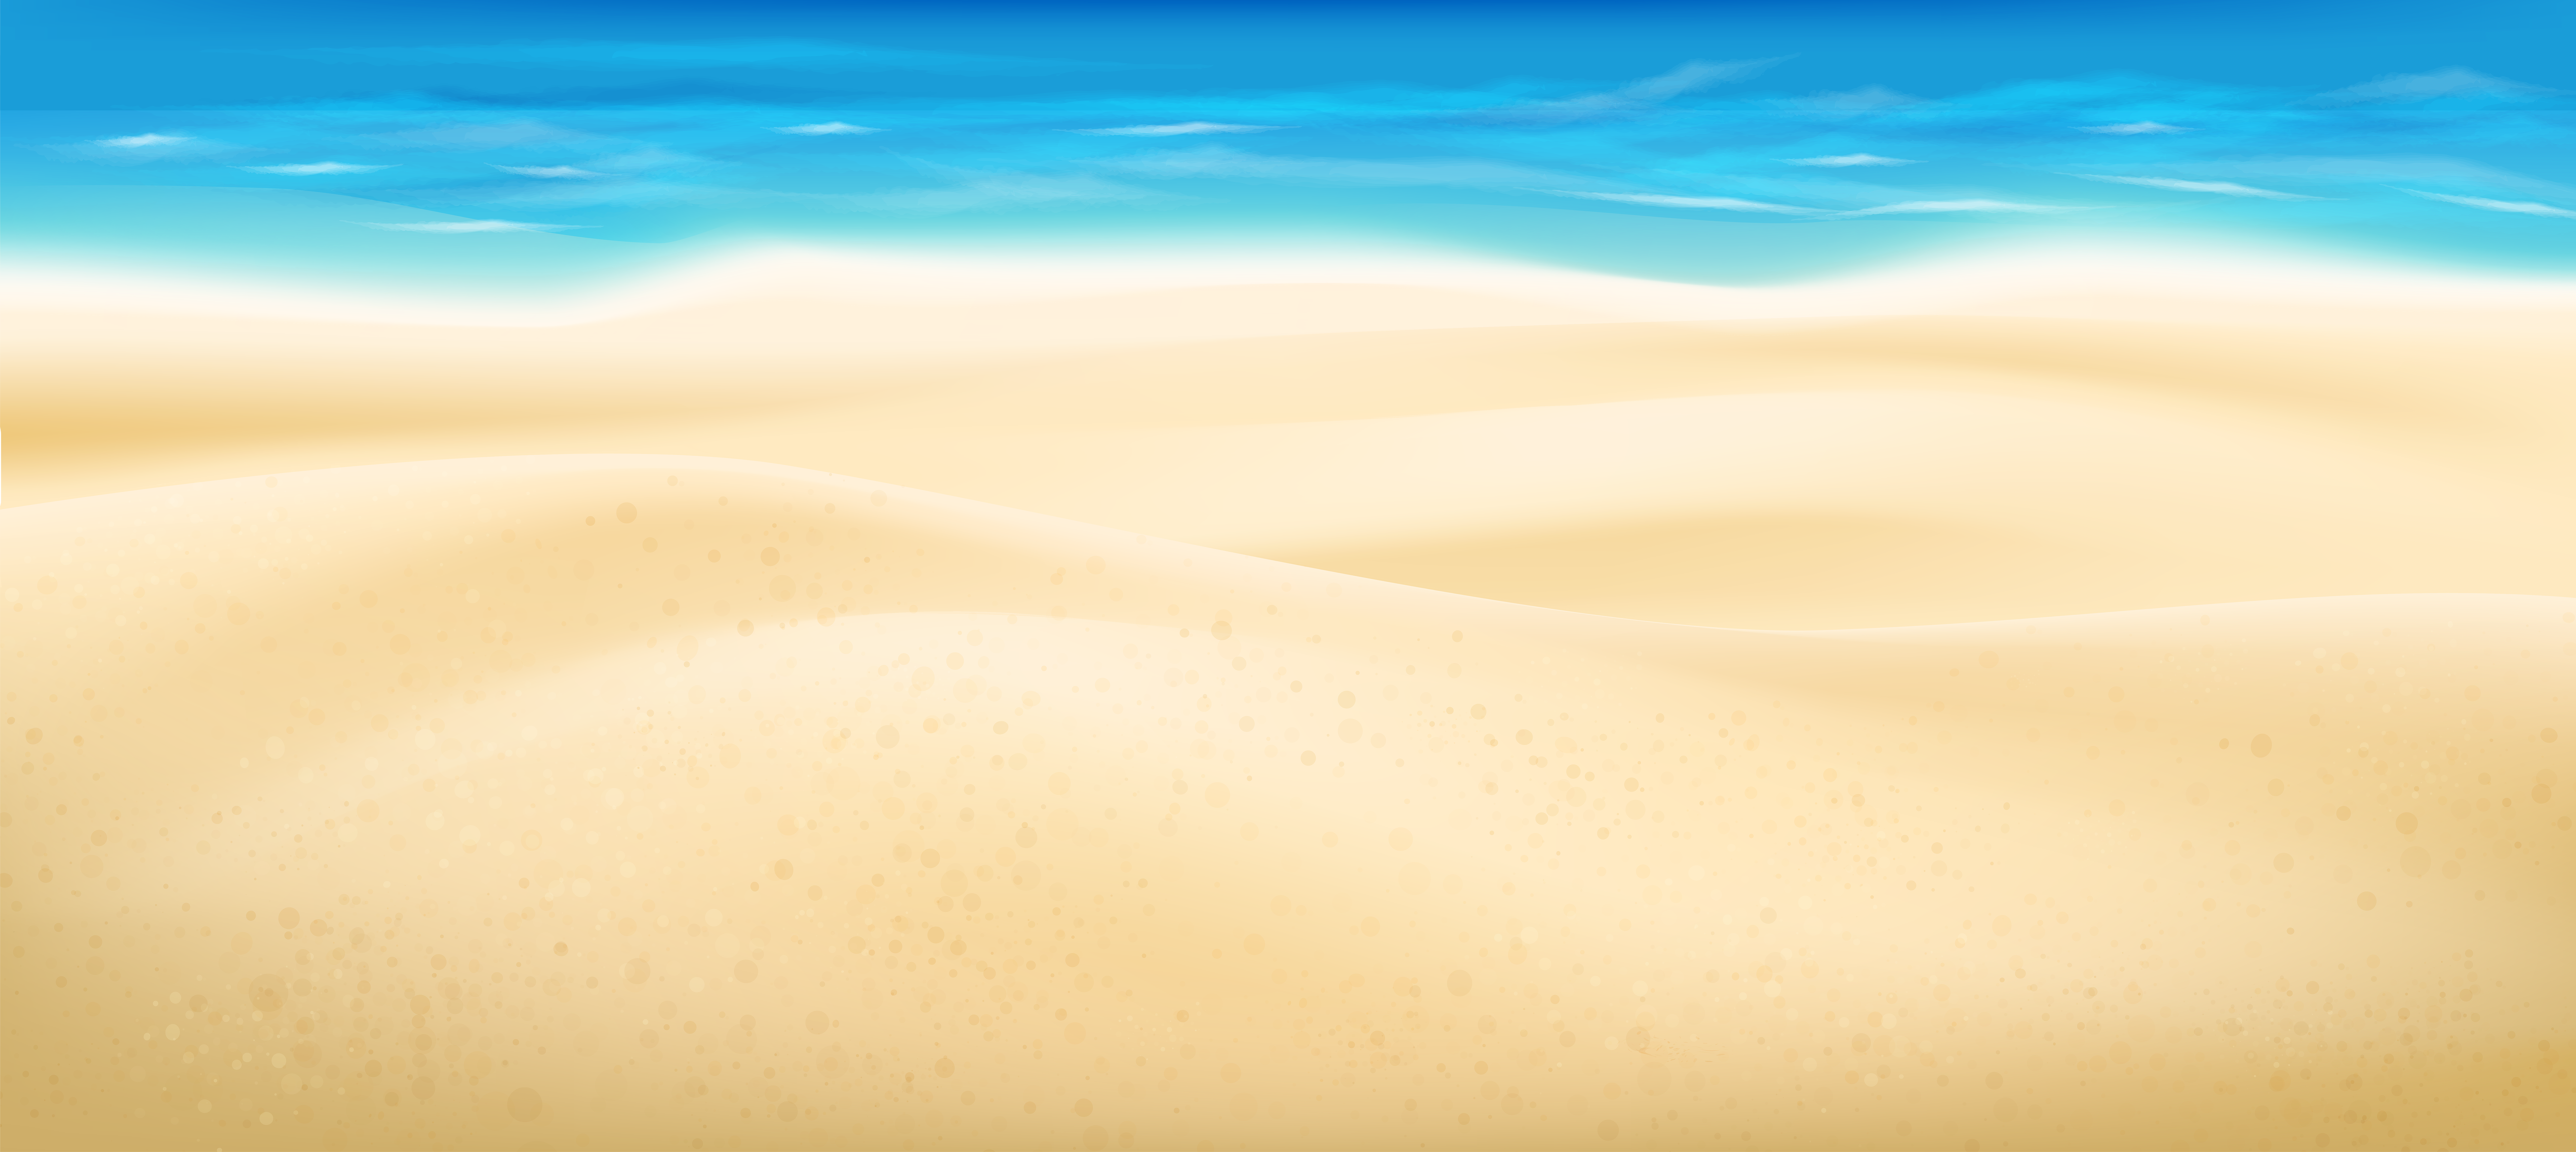 Sea of sand clipart 20 free Cliparts | Download images on ...